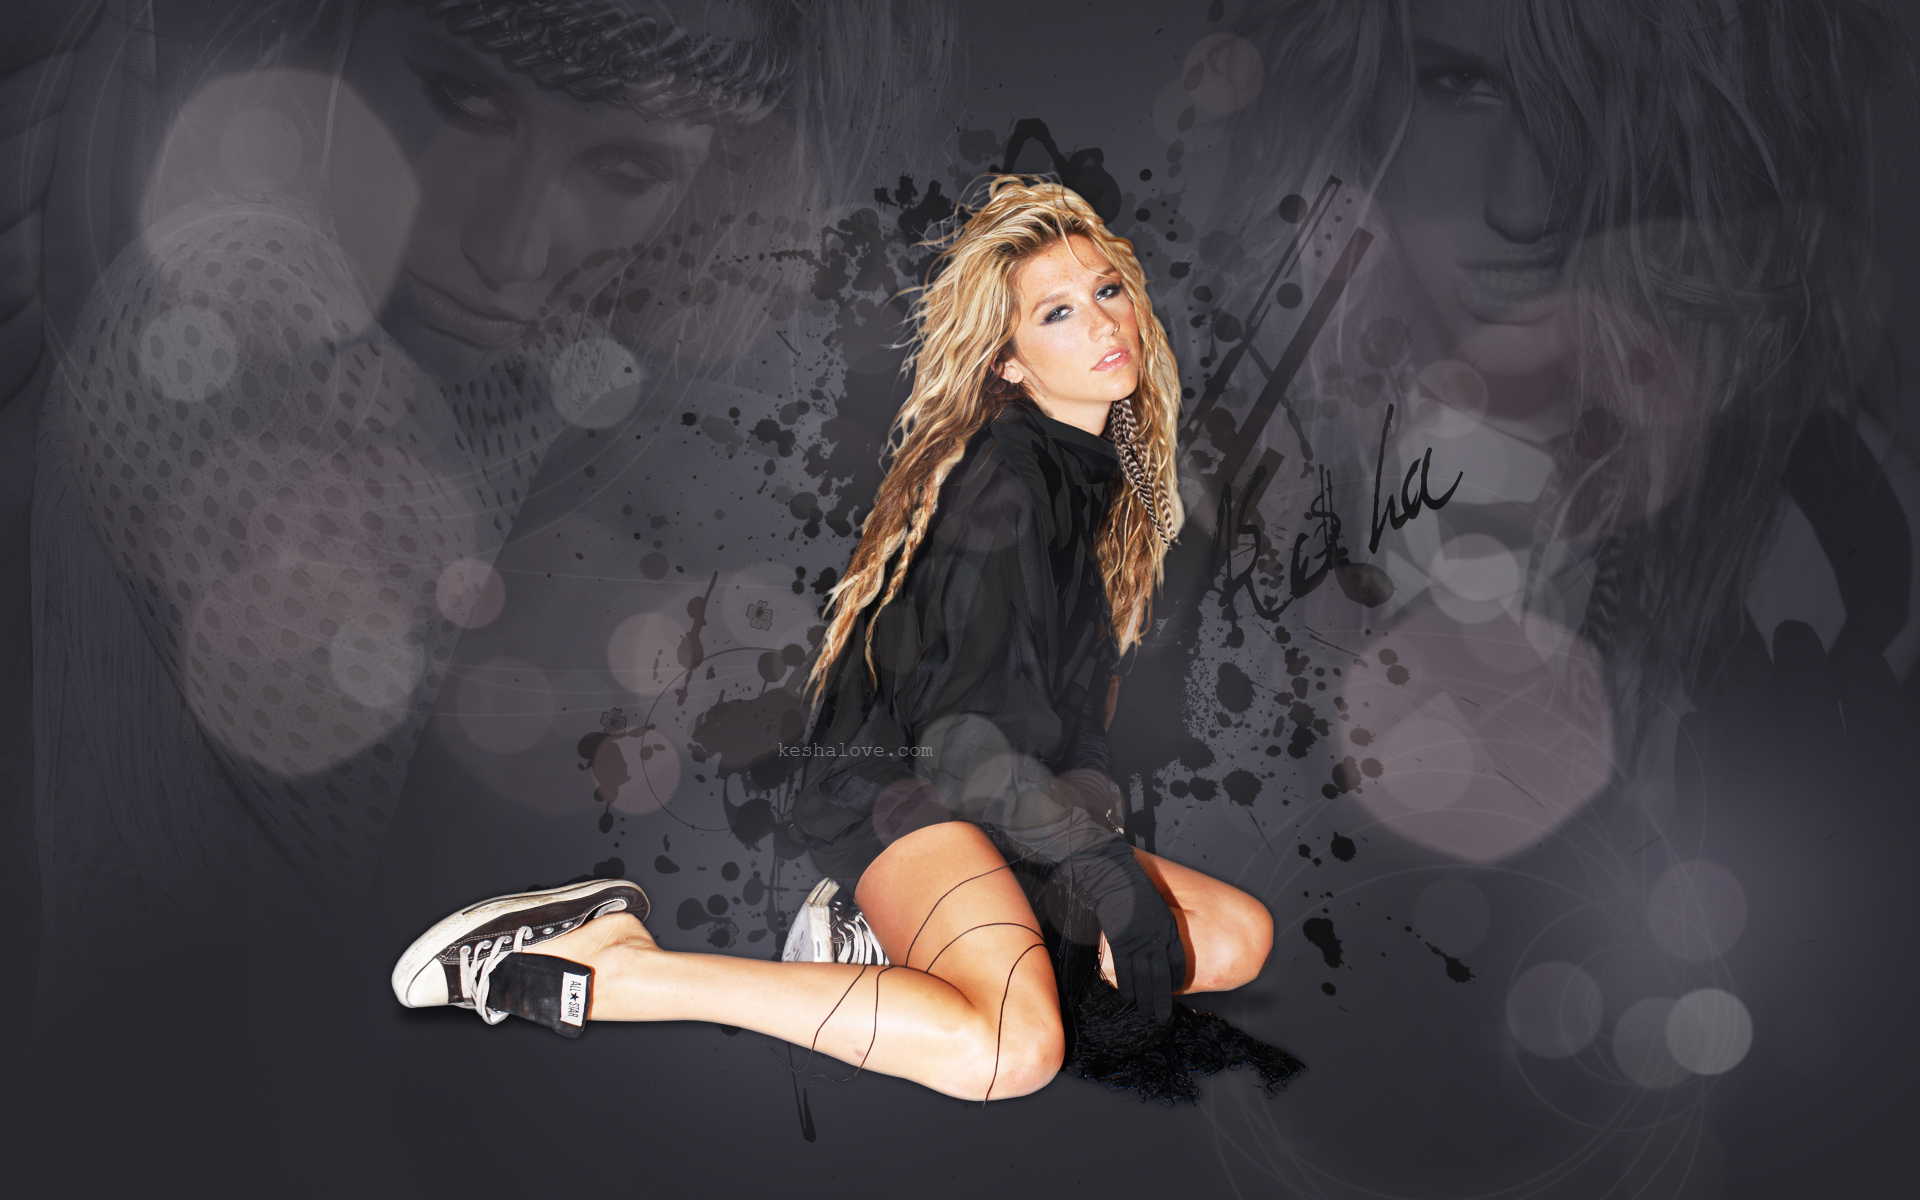 Papel de Parede Kesha Cantora Wallpaper para Download no Celular ou 1920x1200